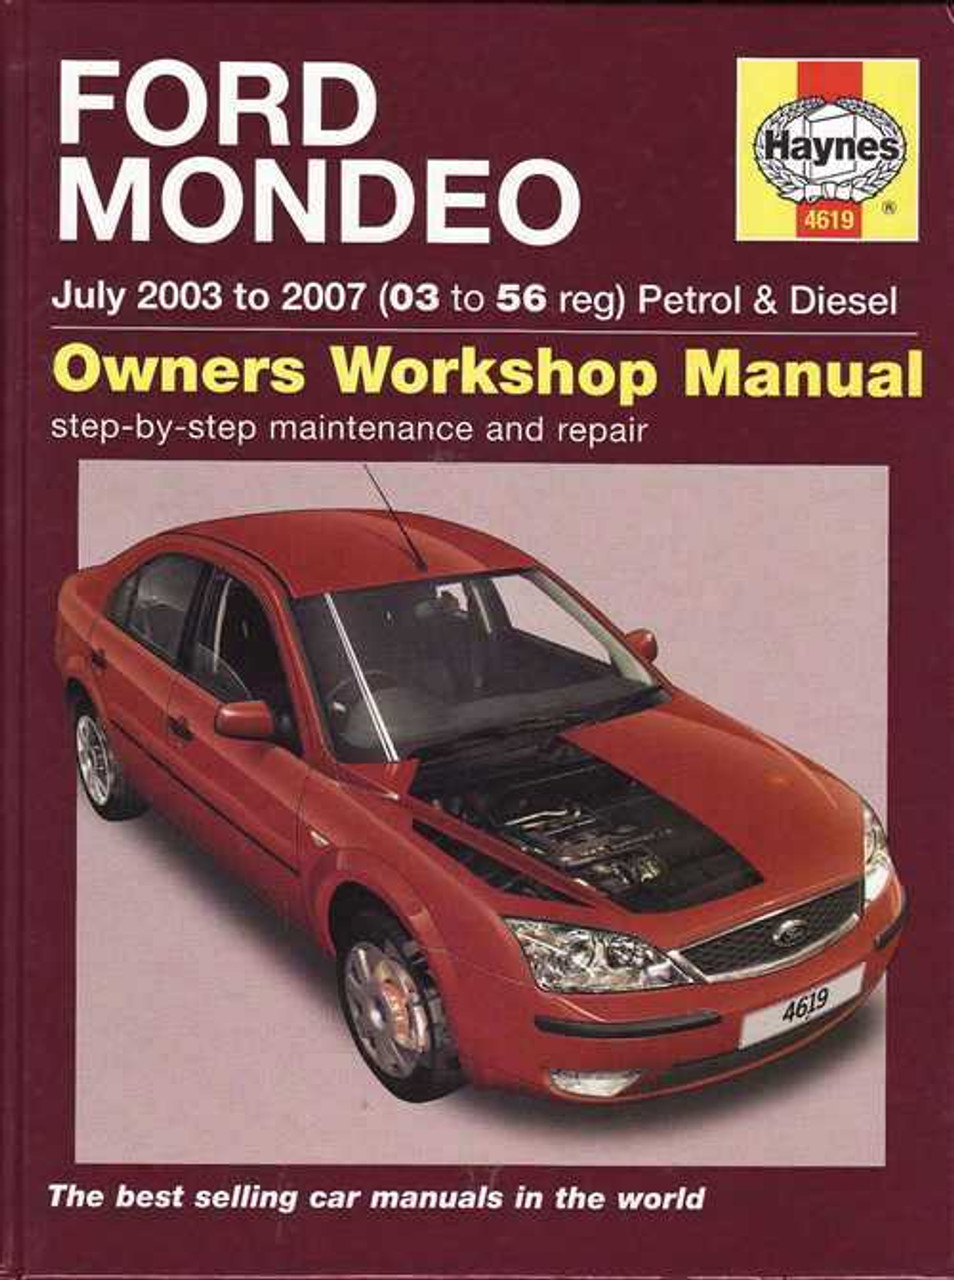 service manual ford mondeo 2003 open source user manual u2022 rh dramatic varieties com ford mondeo mk3 owners manual free download ford mondeo mark 3 owners manual